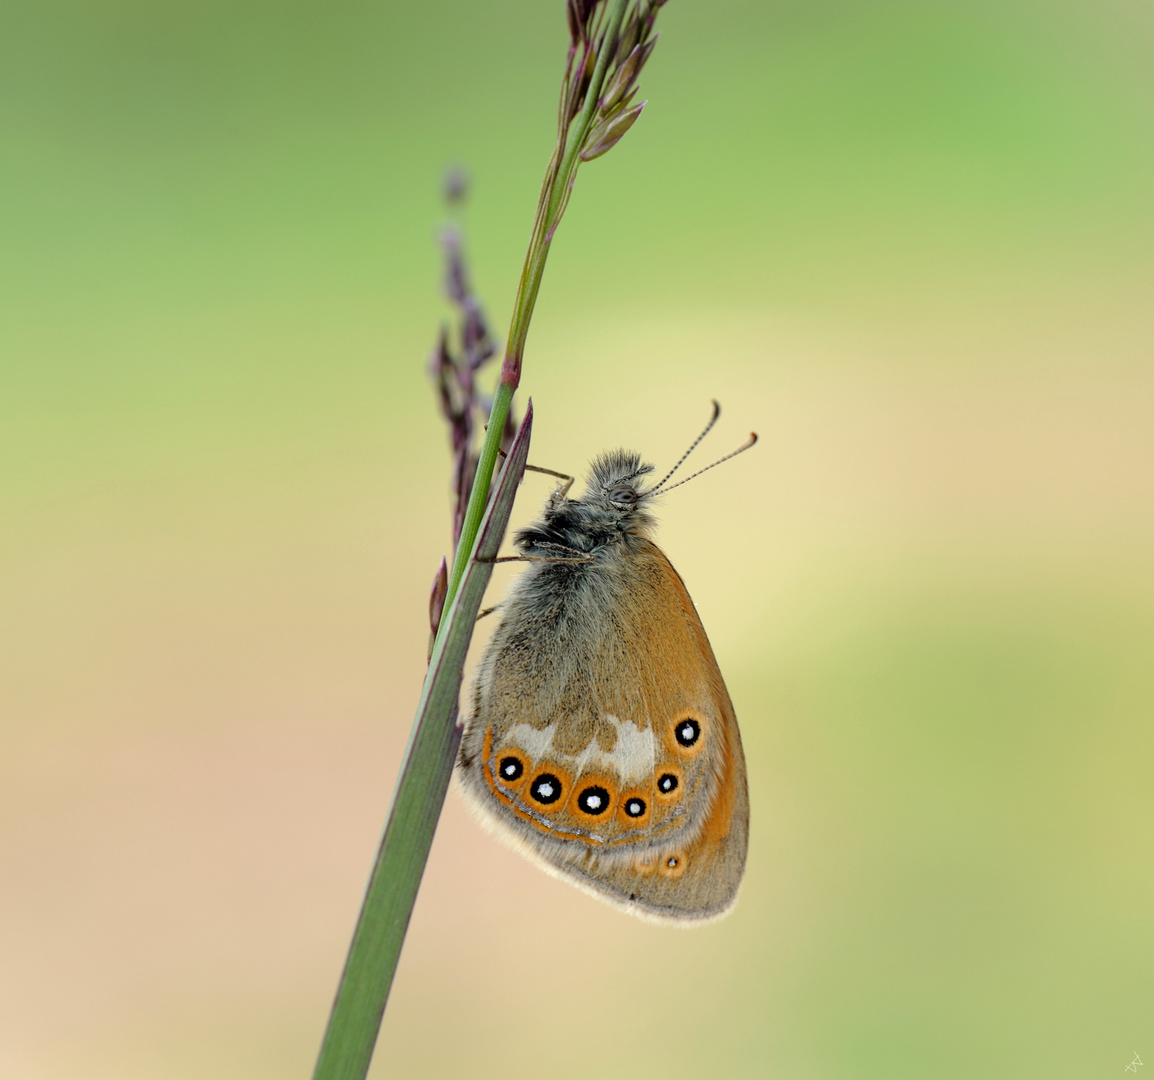 Coenonympha glycerion iphicles